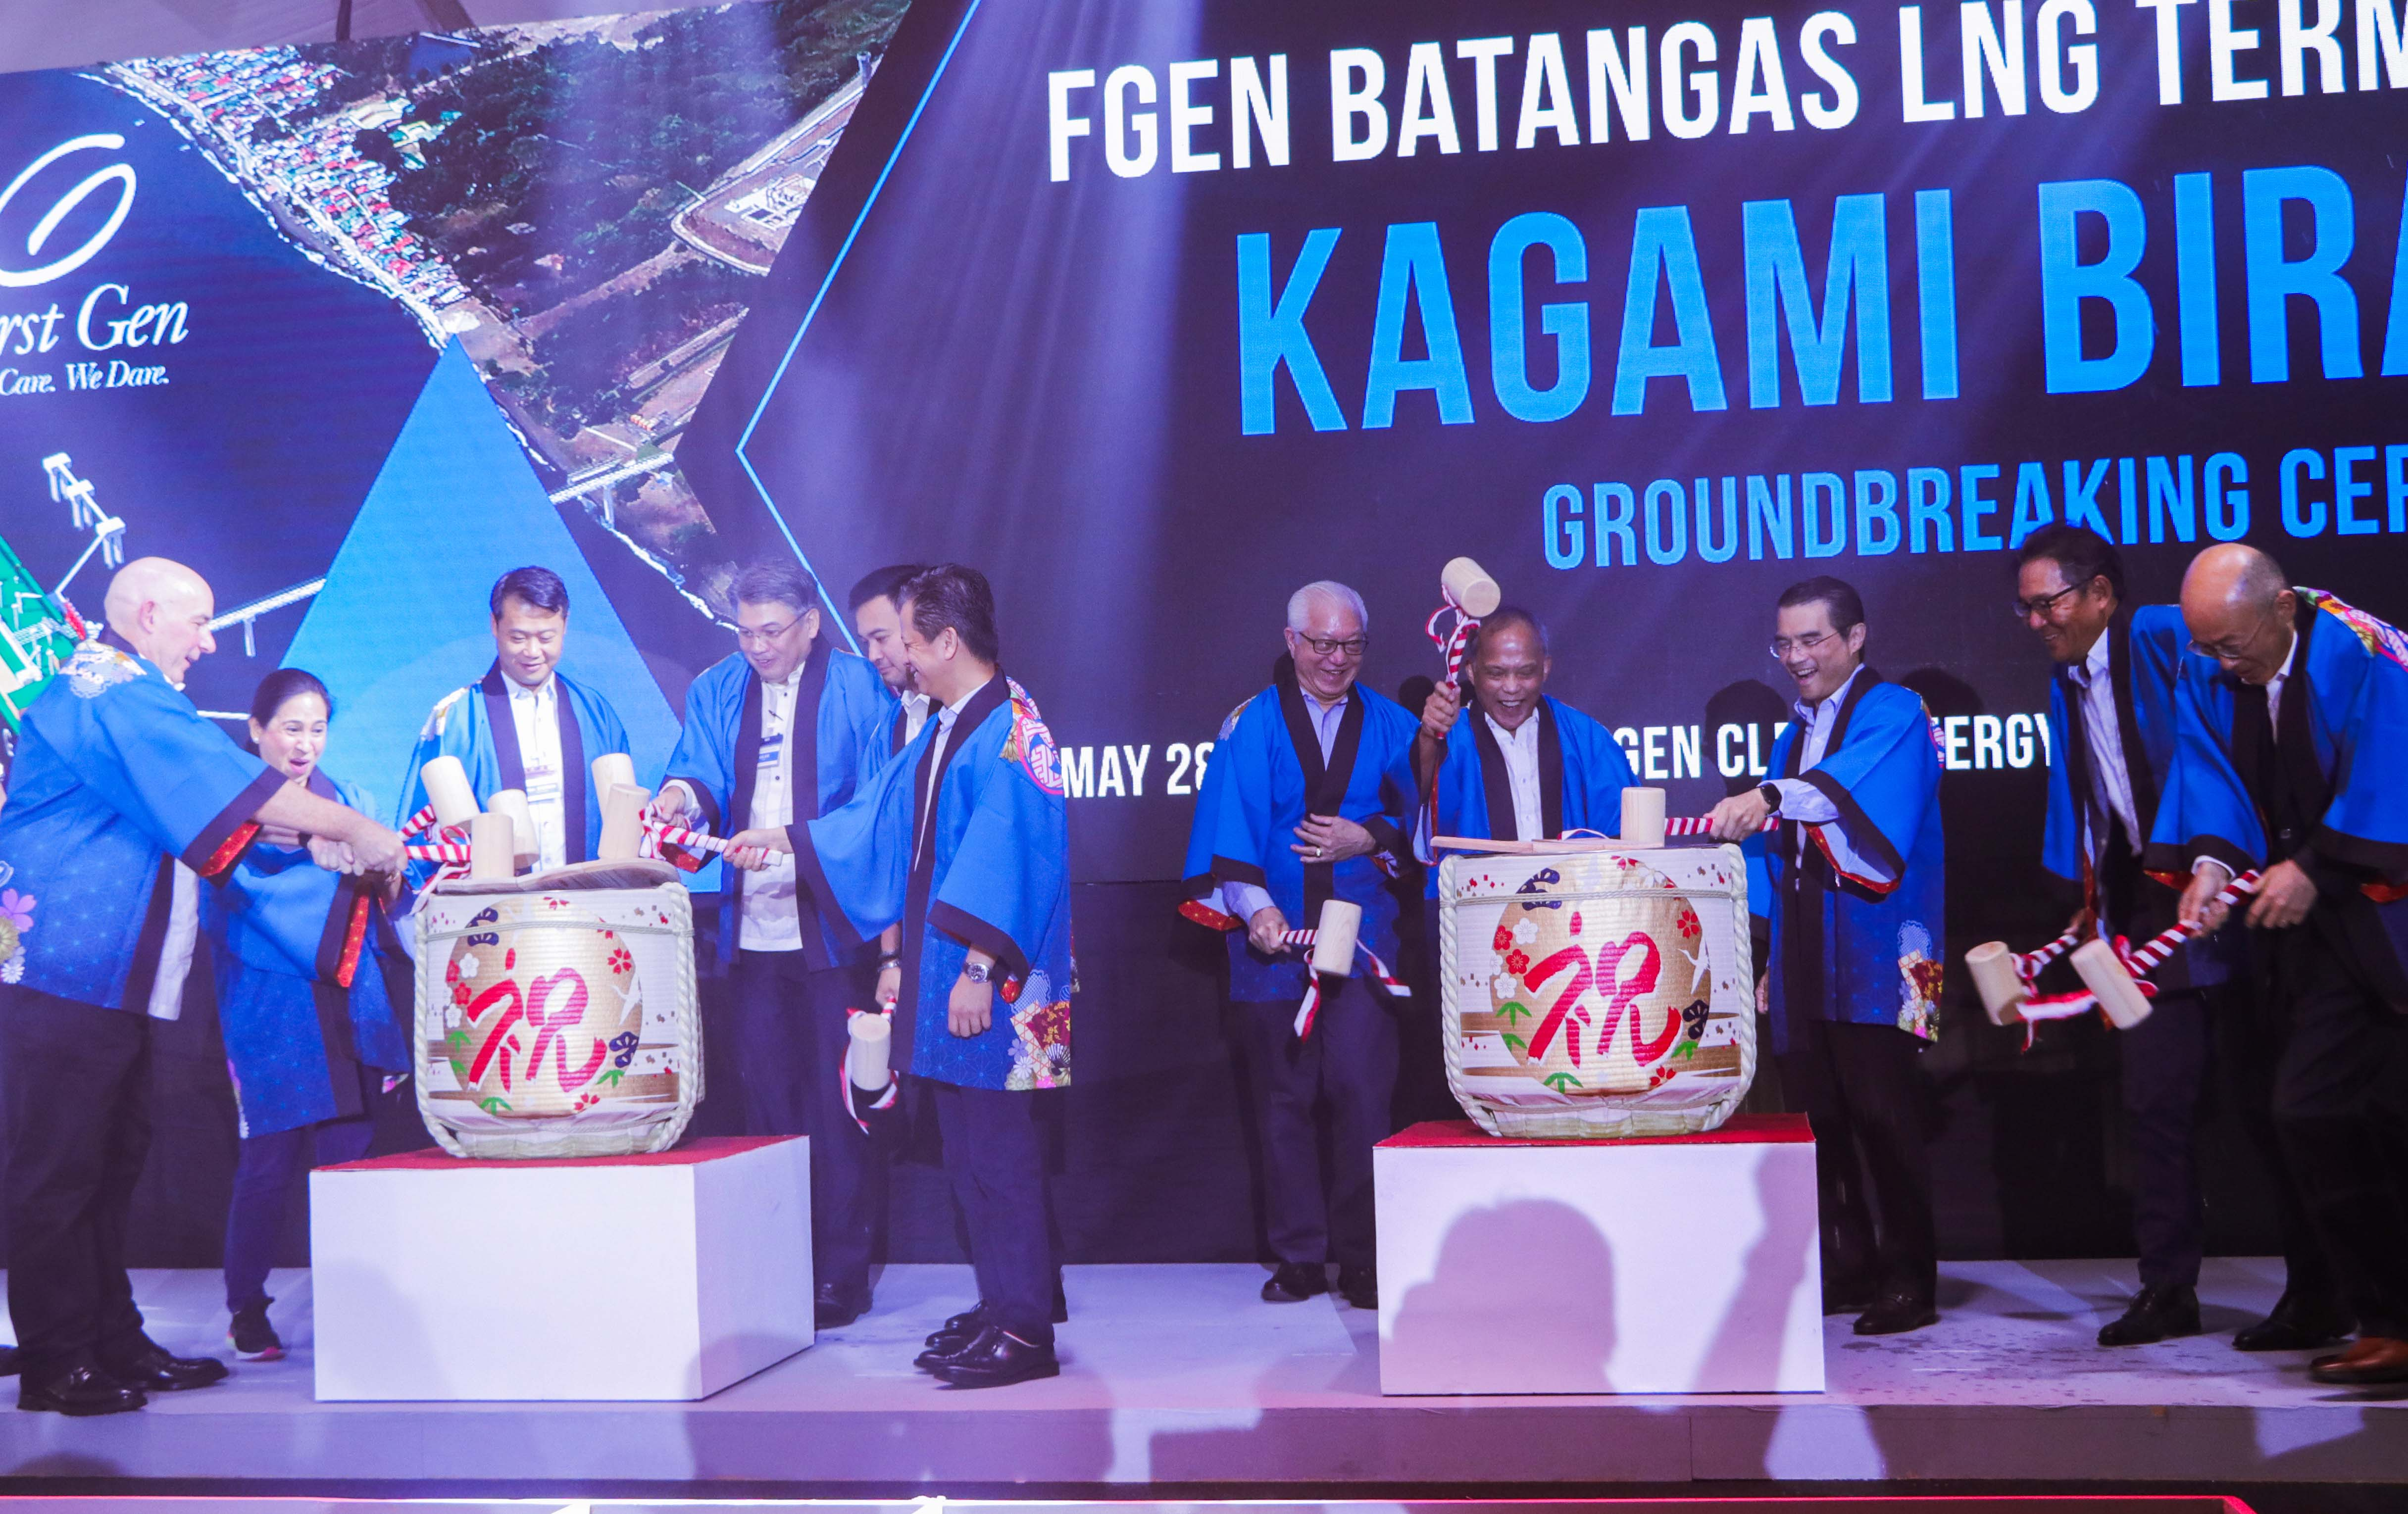 Top government officials led by Energy Sec. Alfonso Cusi (8th from left) join counterparts from FGEN LNG led by chairman Federico R. Lopez (9th from left) in opening two casks of sake during the kagami biraki. Also in photo are (from left) Jonathan Russell, First Gen EVP and chief commercial officer; Beverley Rose Dimacuha, Batangas City mayor; Sen. Sherwin Gatchalian, chairman of the Senate Energy Committee; Giles Puno, First Gen president and COO; Rep. Lord Allan Velasco, chairman of the House Committee on Energy; Rep. Mario Vittorio Marino, Fifth District of Batangas; Hermilando Mandanas, Batangas governor; Makoto Iyori, minister for economic affairs of the Embassy of Japan; and Kunio Nohata, Tokyo Gas senior managing executive officer